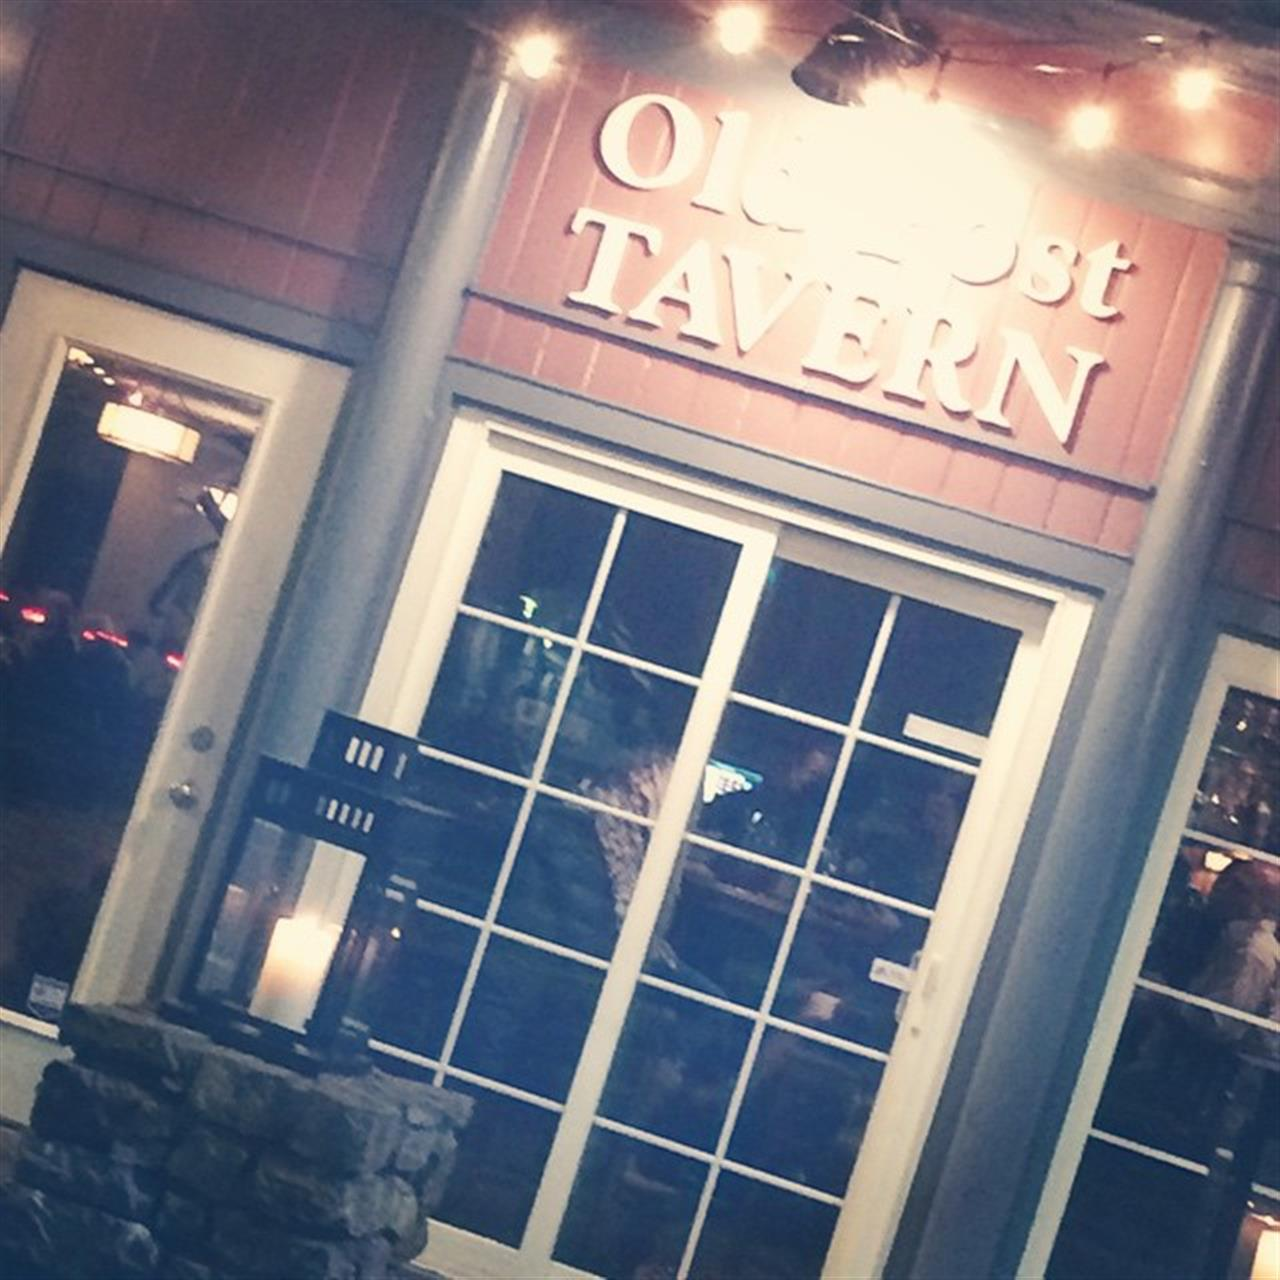 Great dinner and cozy atmosphere last night at Old Post Tavern. #Fairfield #fairfieldct #food #restaurants #LeadingRELocal